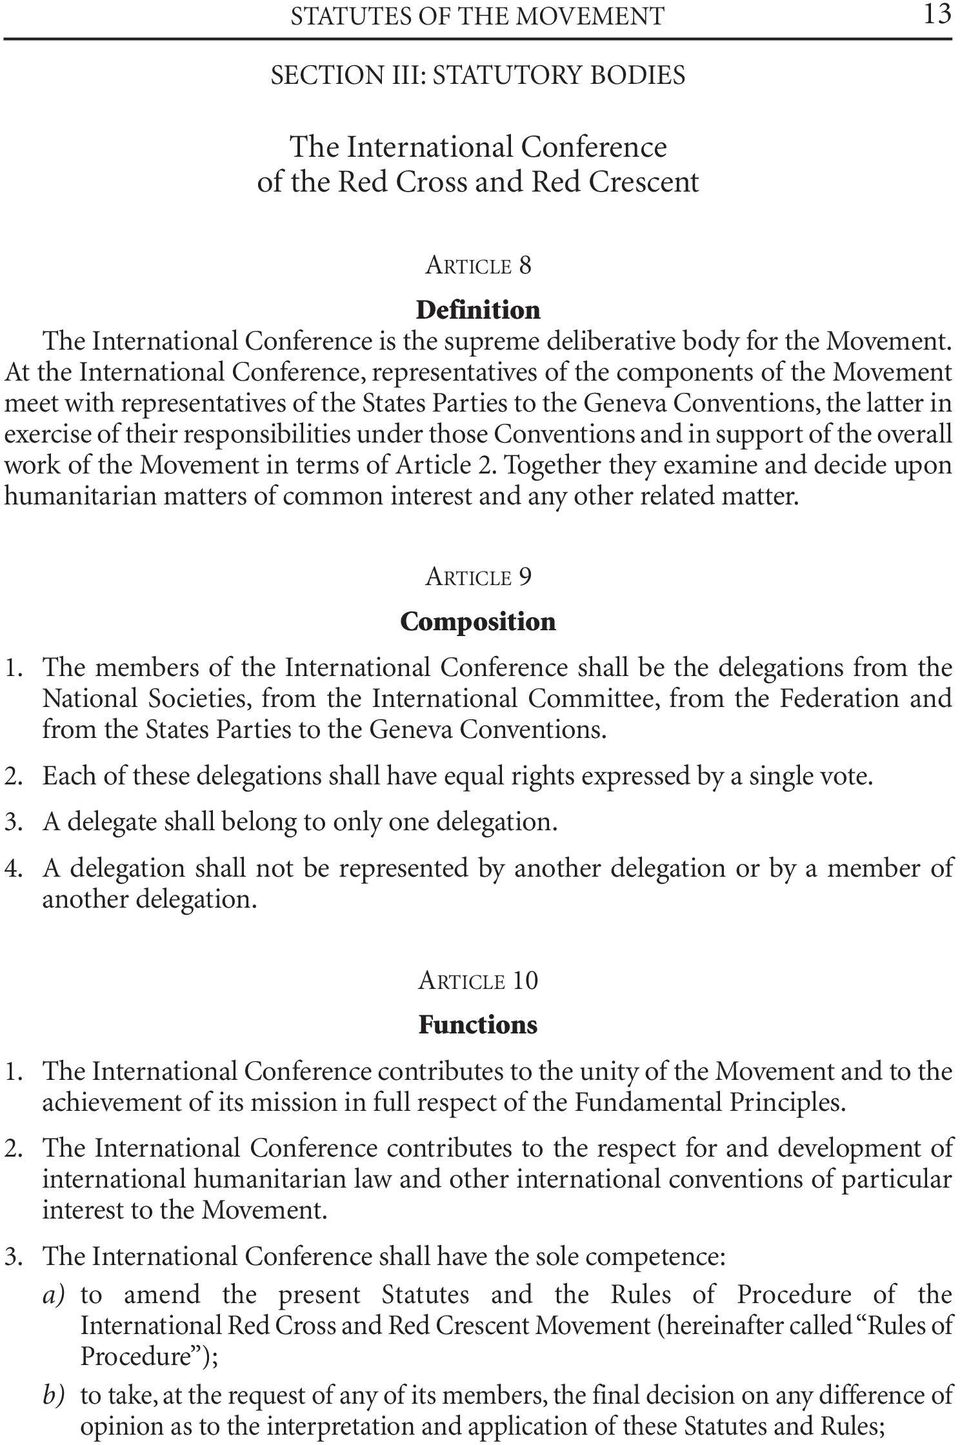 At the International Conference, representatives of the components of the Movement meet with representatives of the States Parties to the Geneva Conventions, the latter in exercise of their